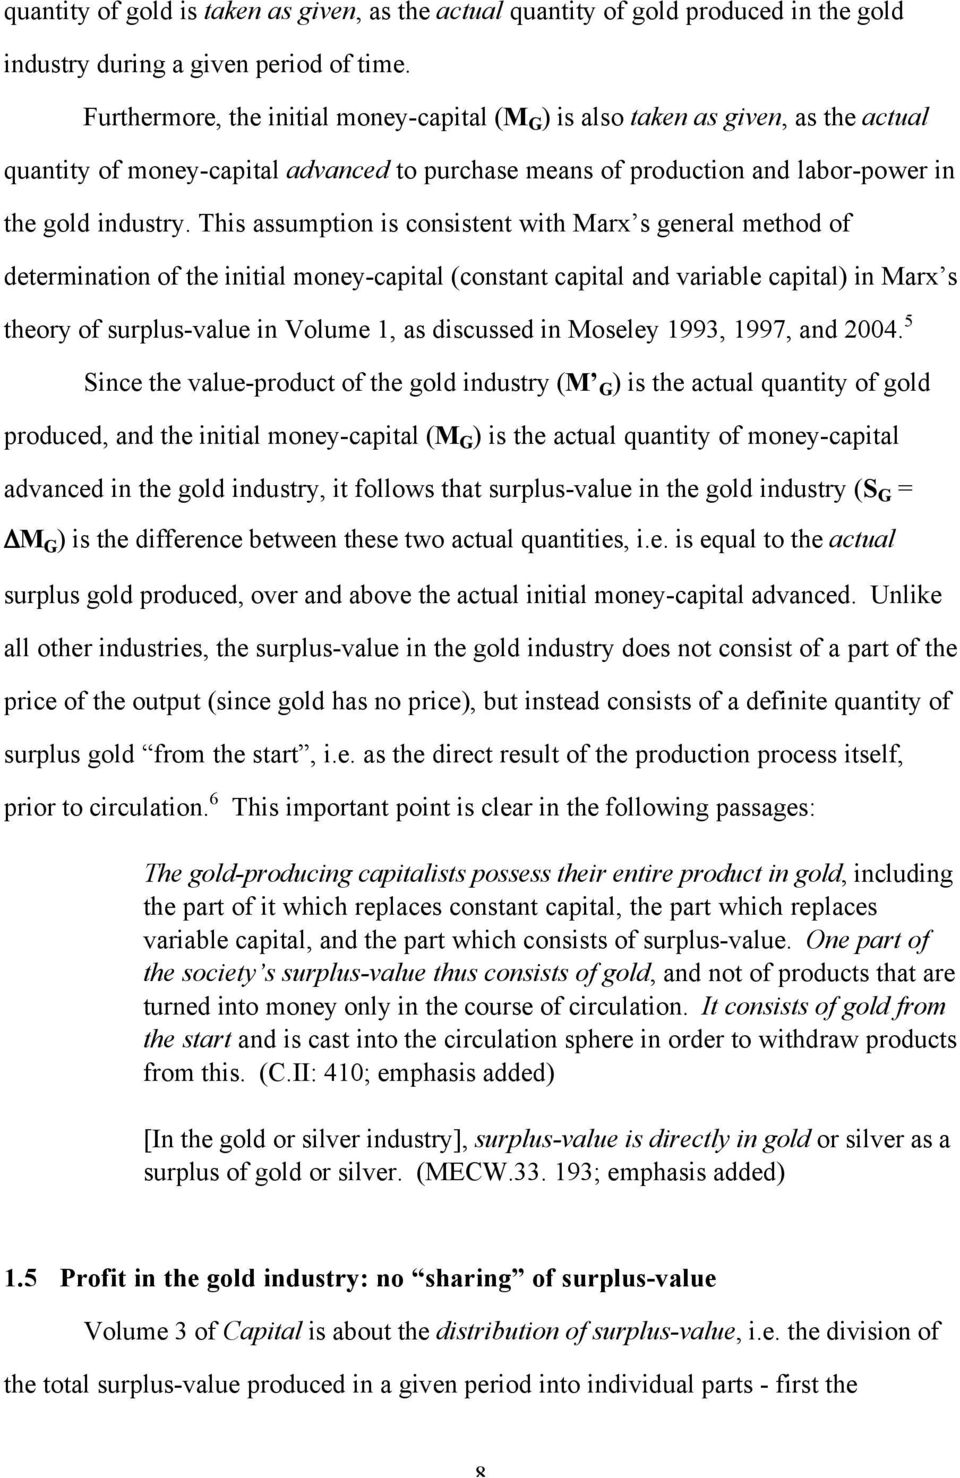 This assumption is consistent with Marx s general method of determination of the initial money-capital (constant capital and variable capital) in Marx s theory of surplus-value in Volume 1, as